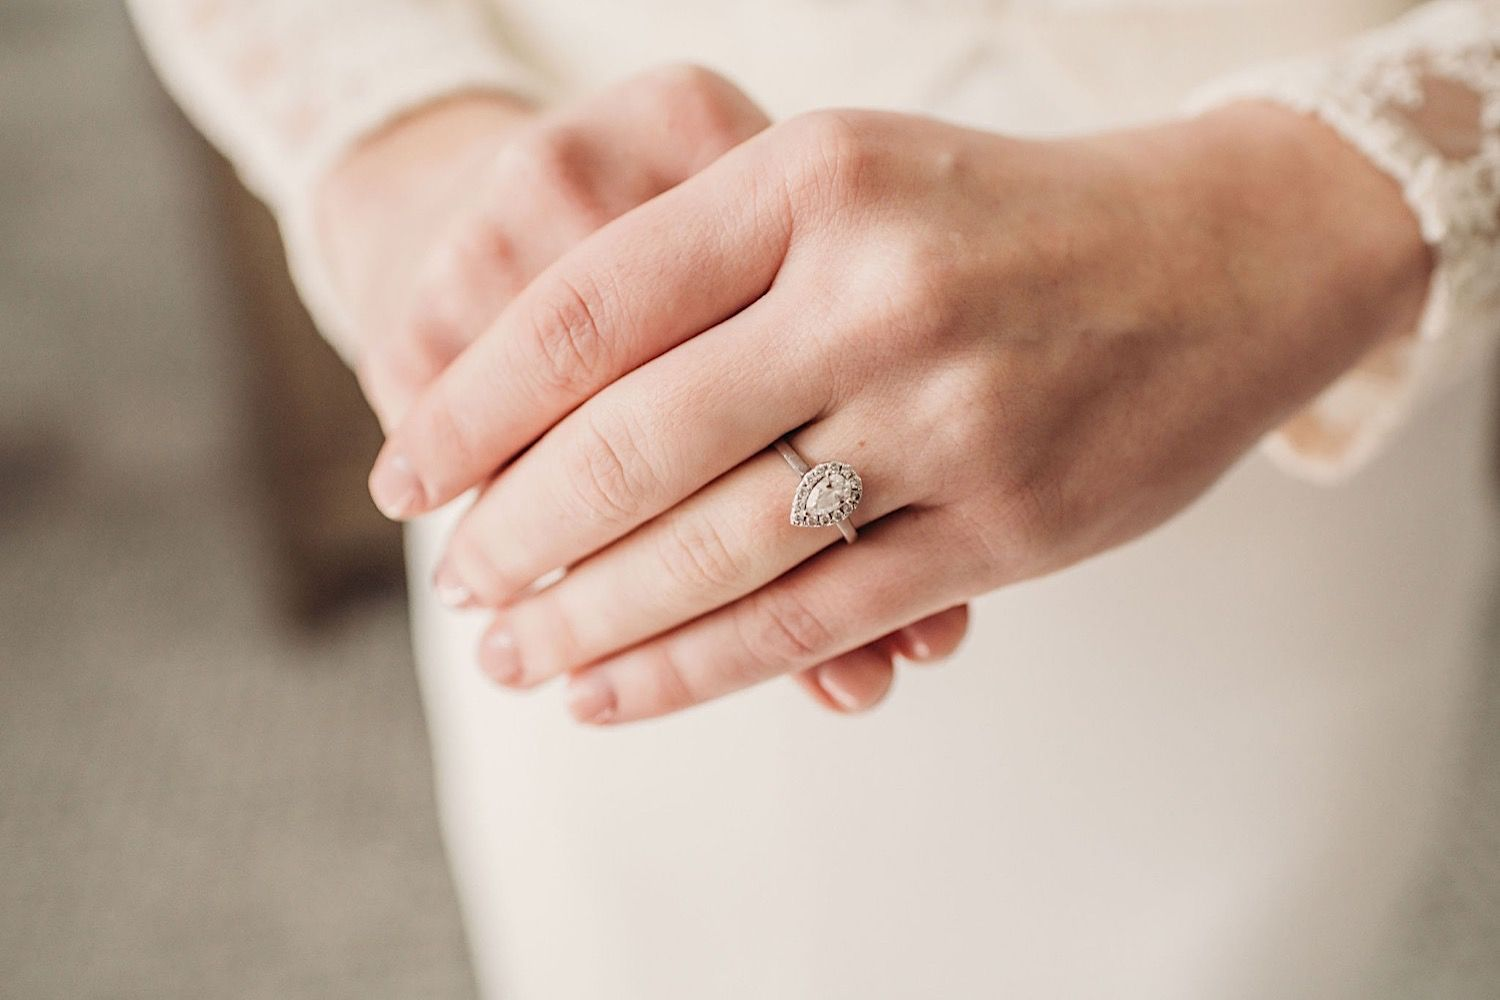 Close up of the bride's hands showing her engagement ring